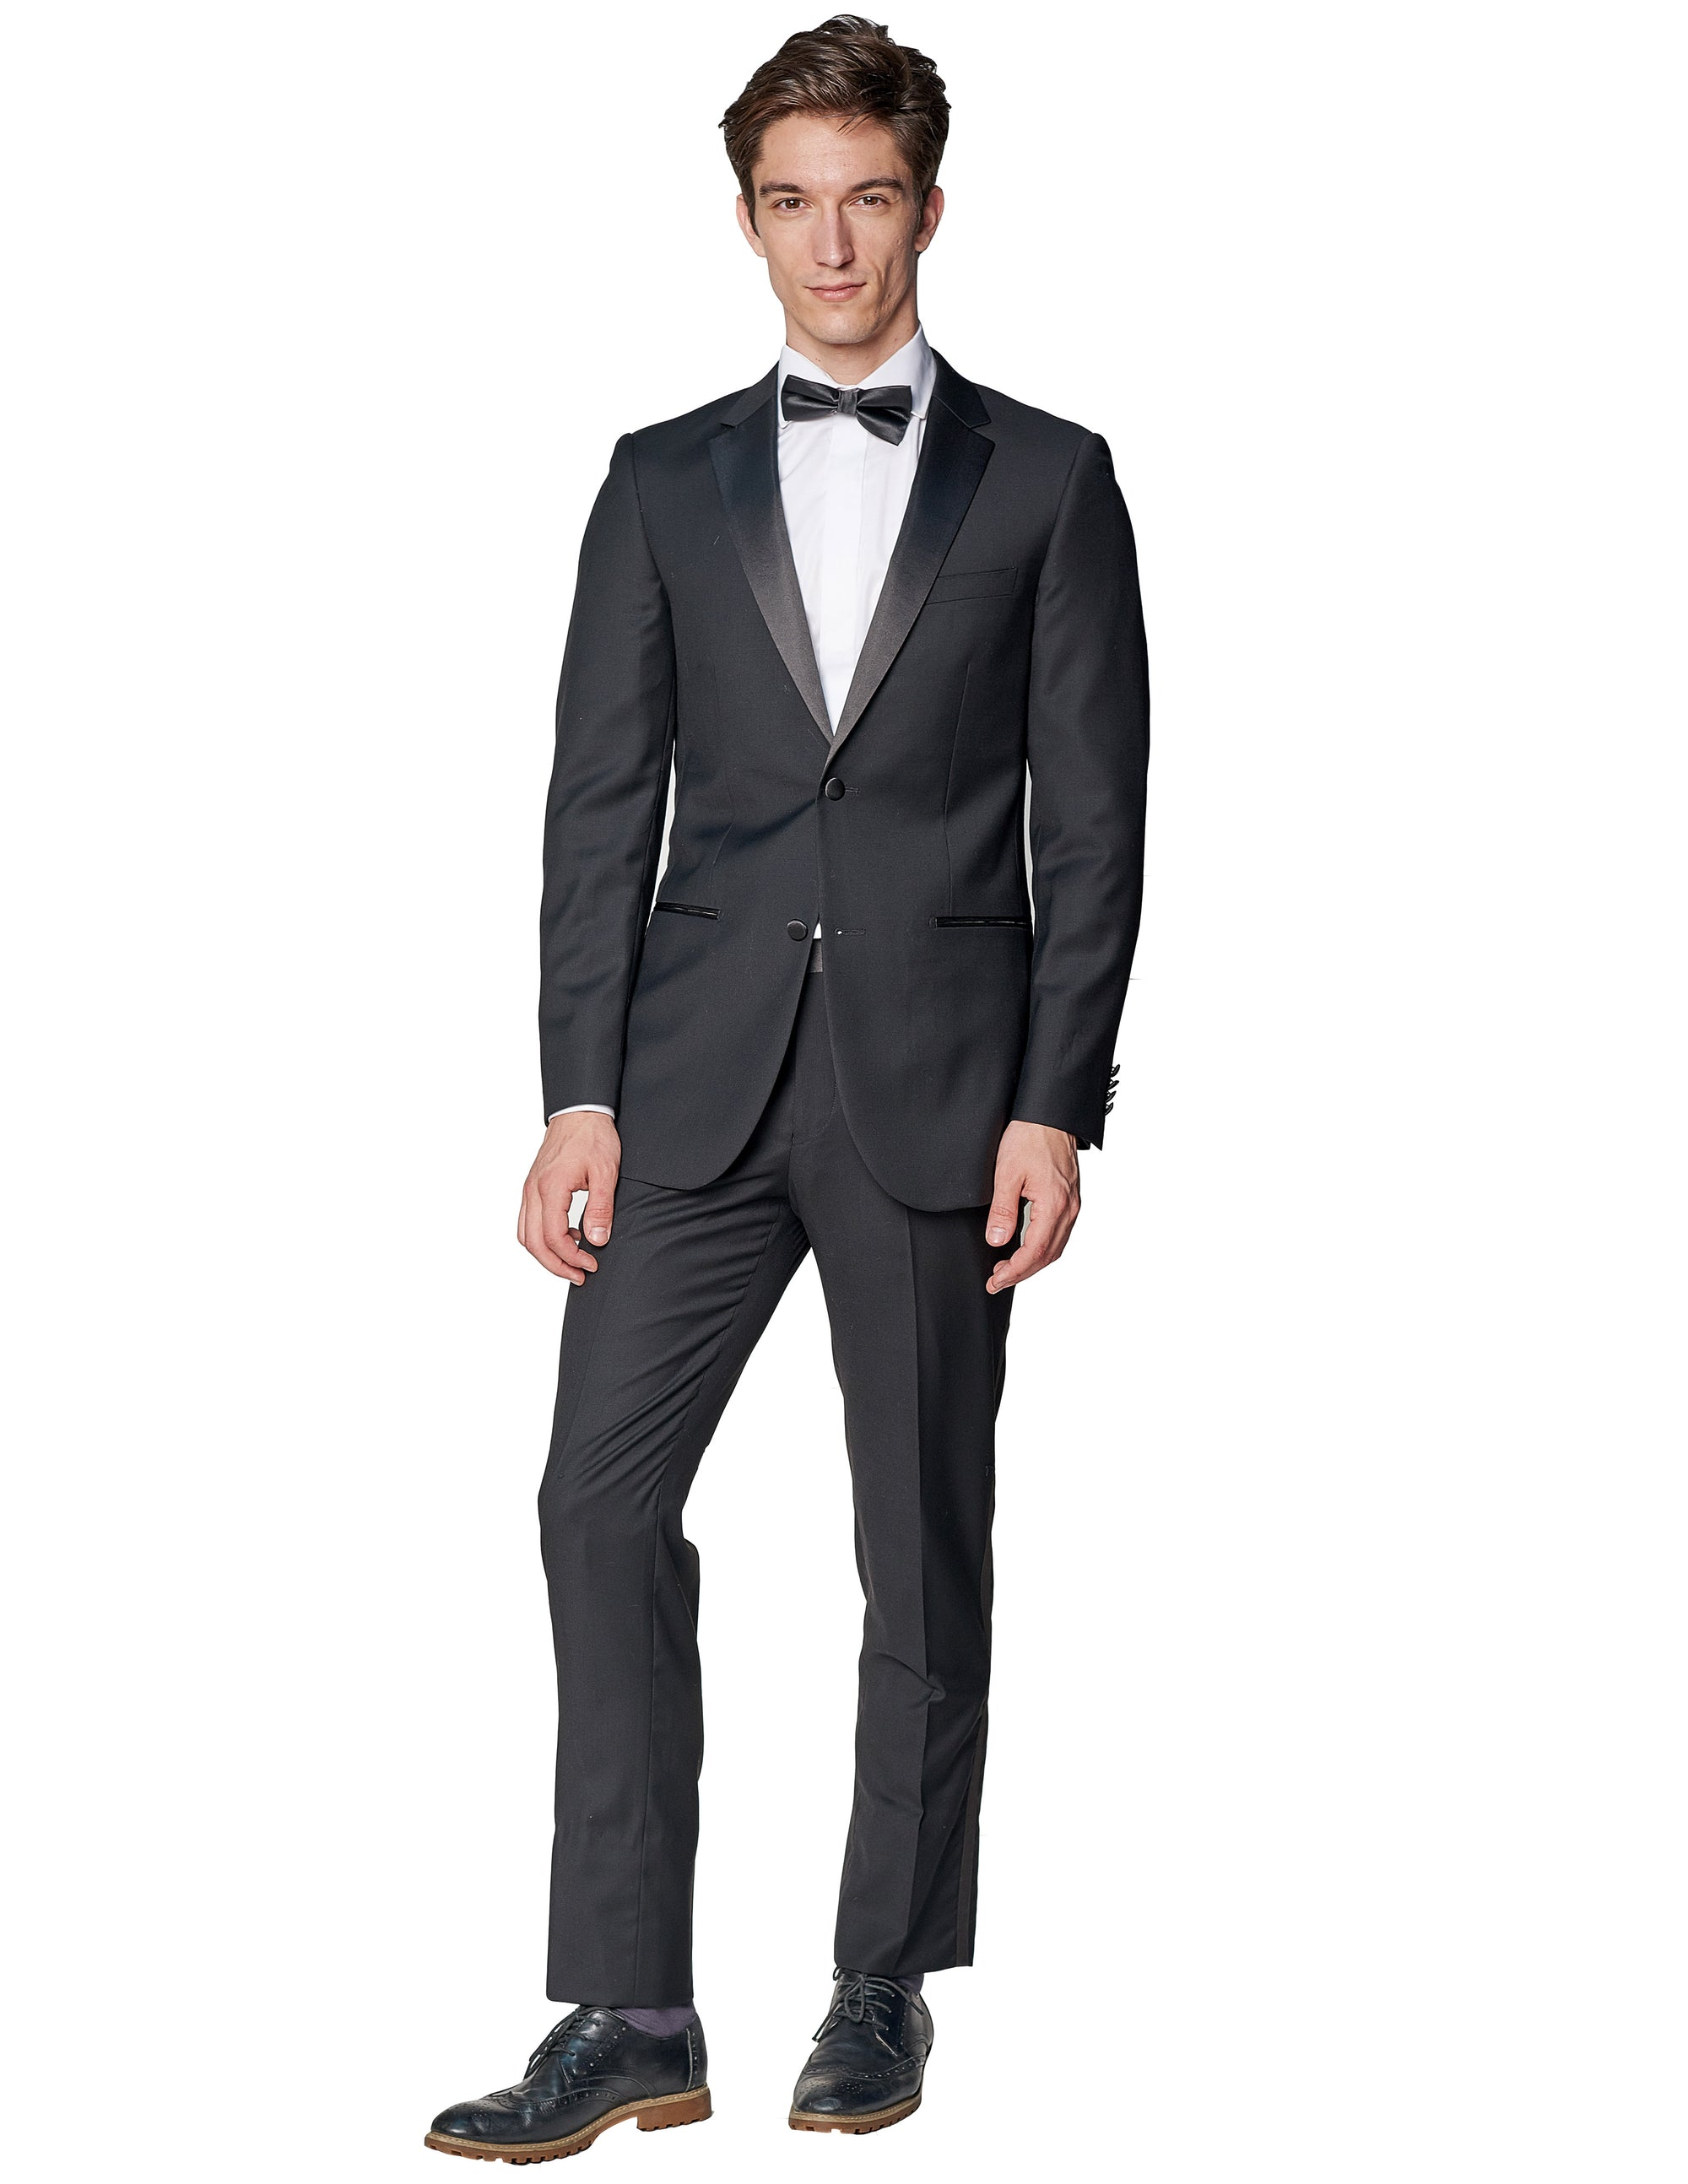 100% Wool Wedding Tuxedos